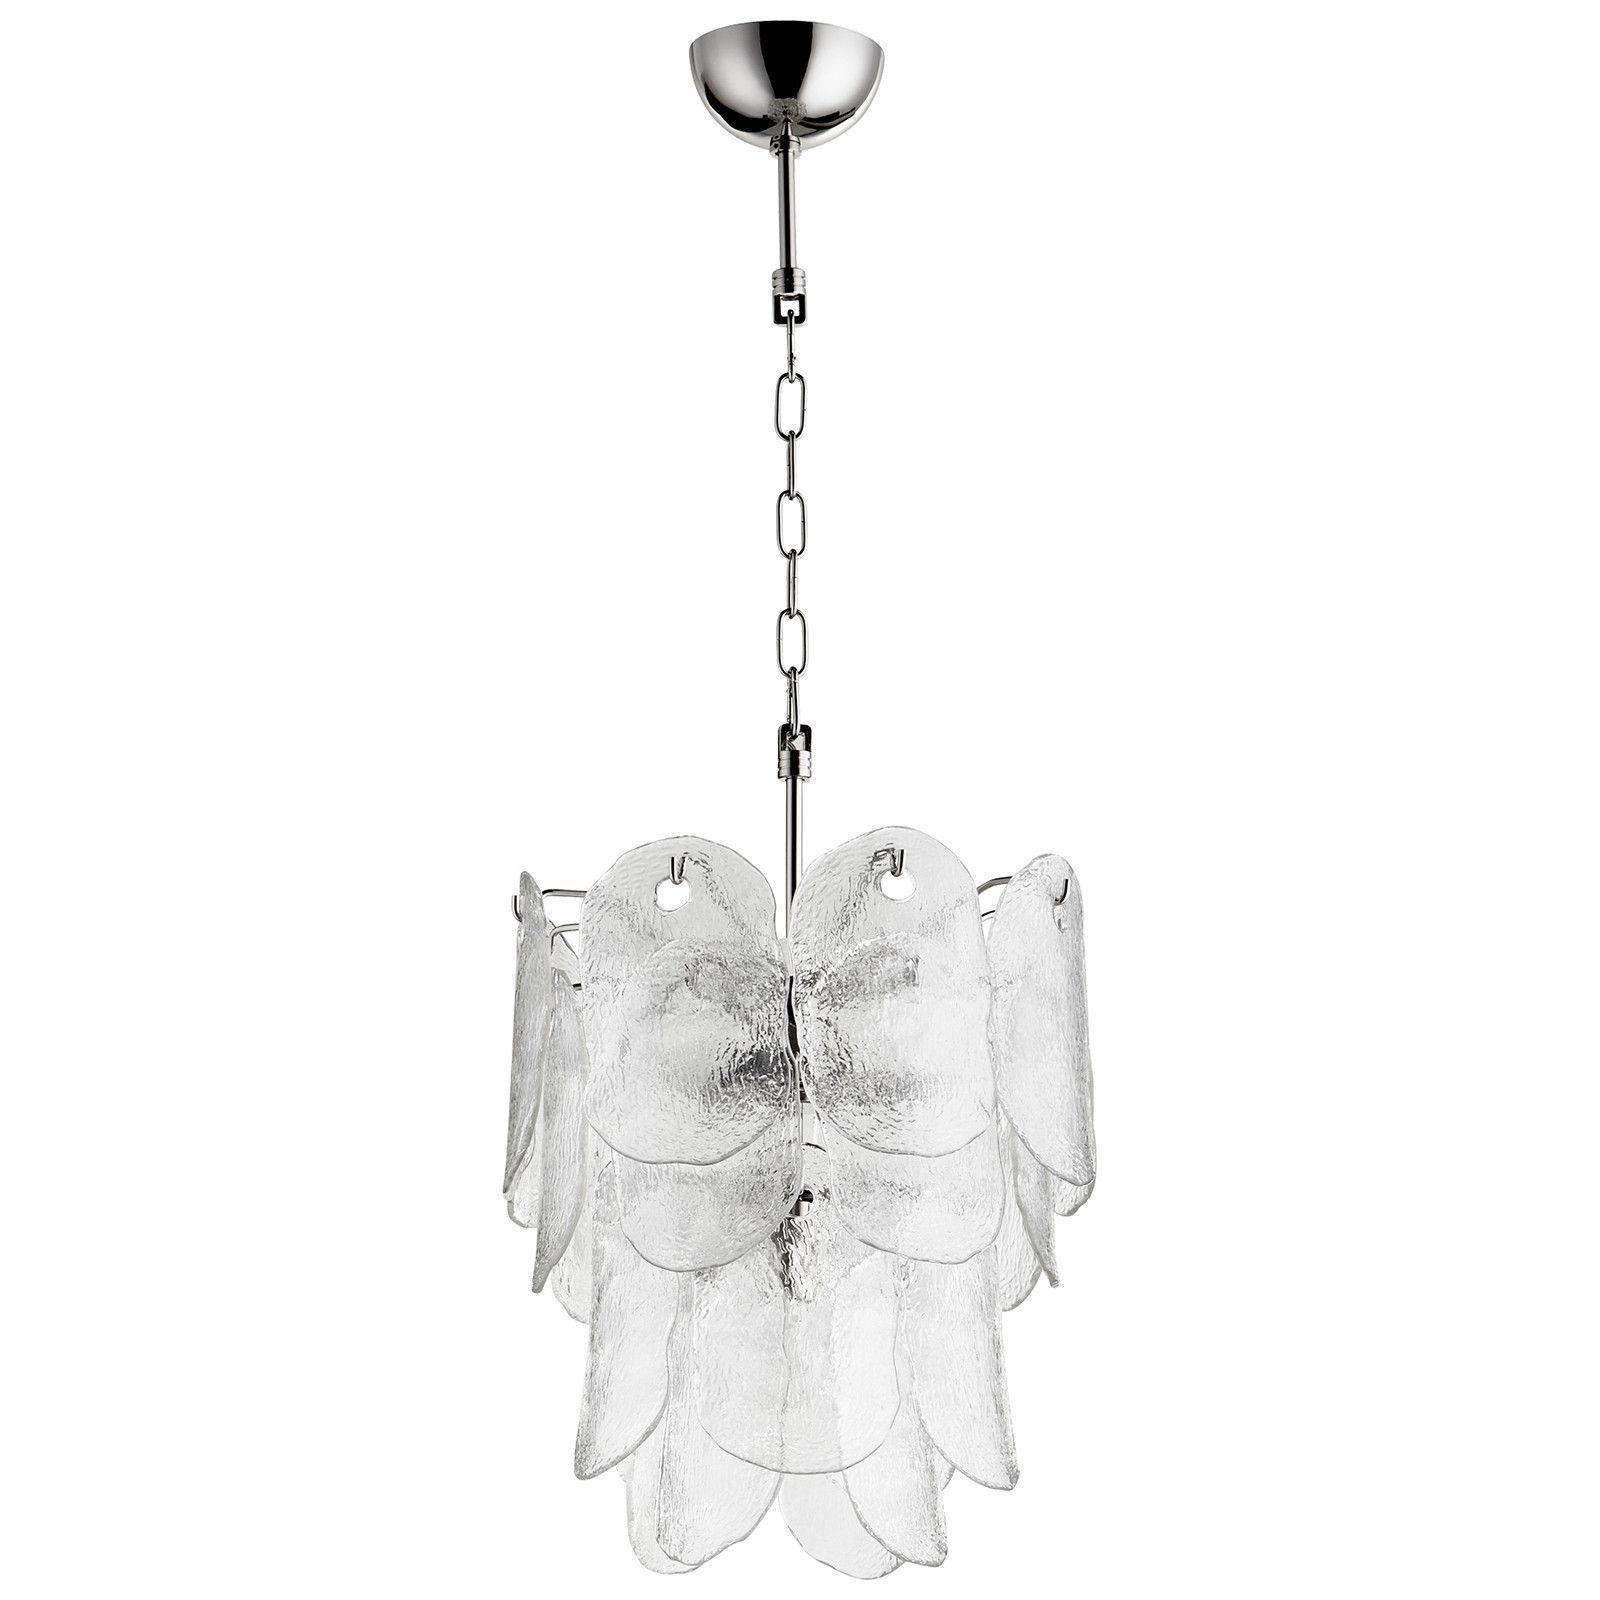 Cascata small pendant in polished nickel pendants and products